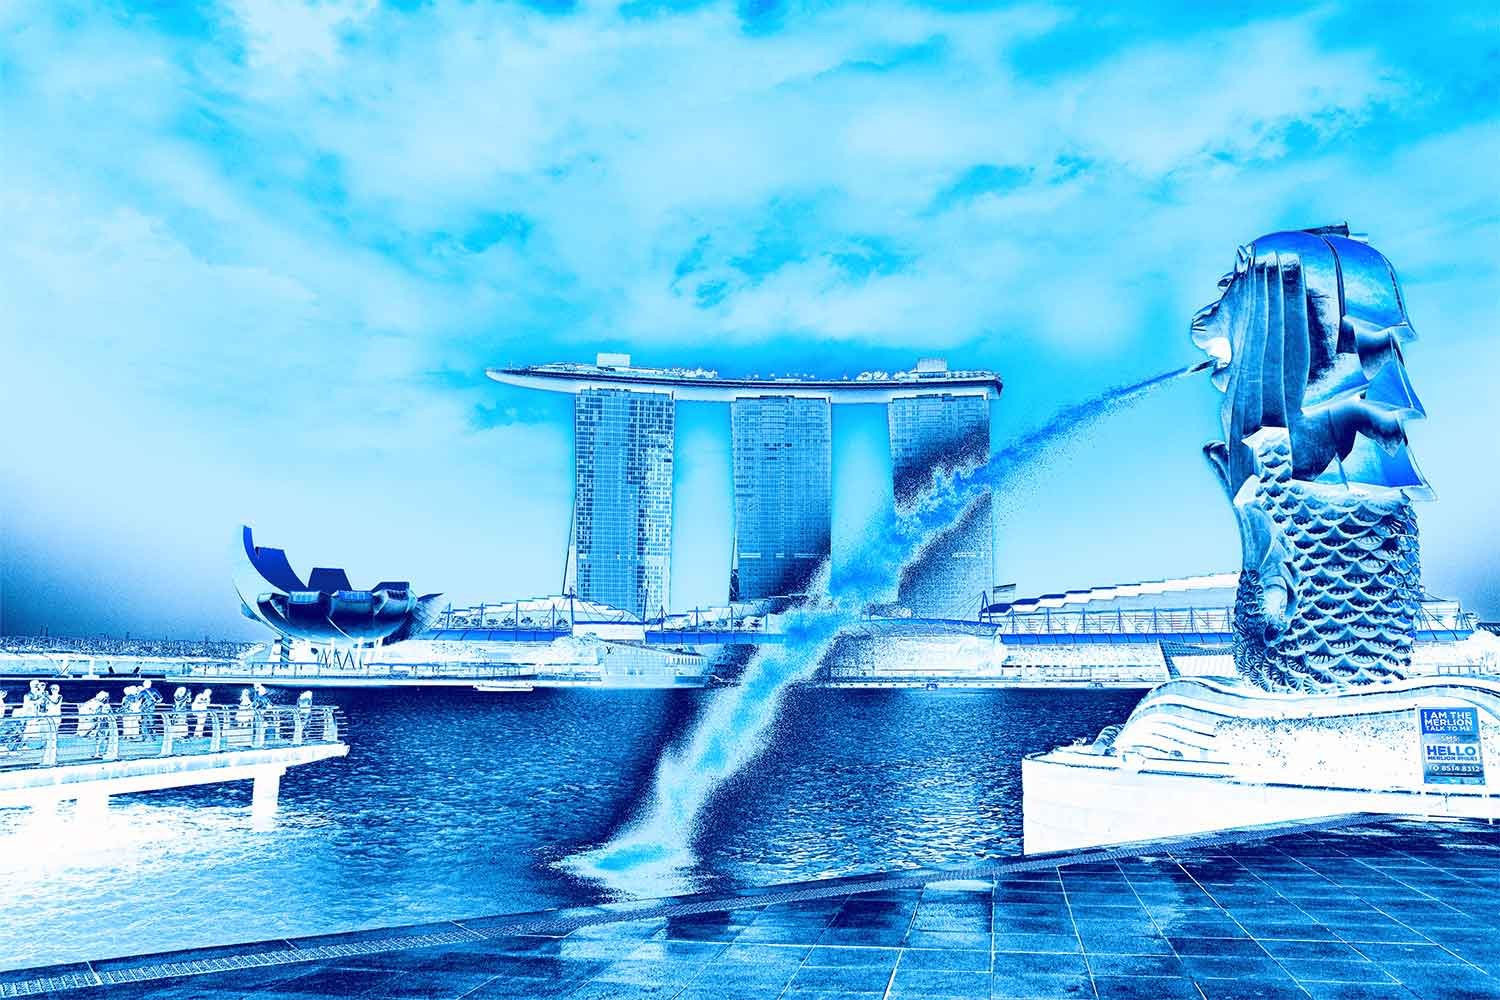 linda-preece-photography-misty-blue-merlion.jpg